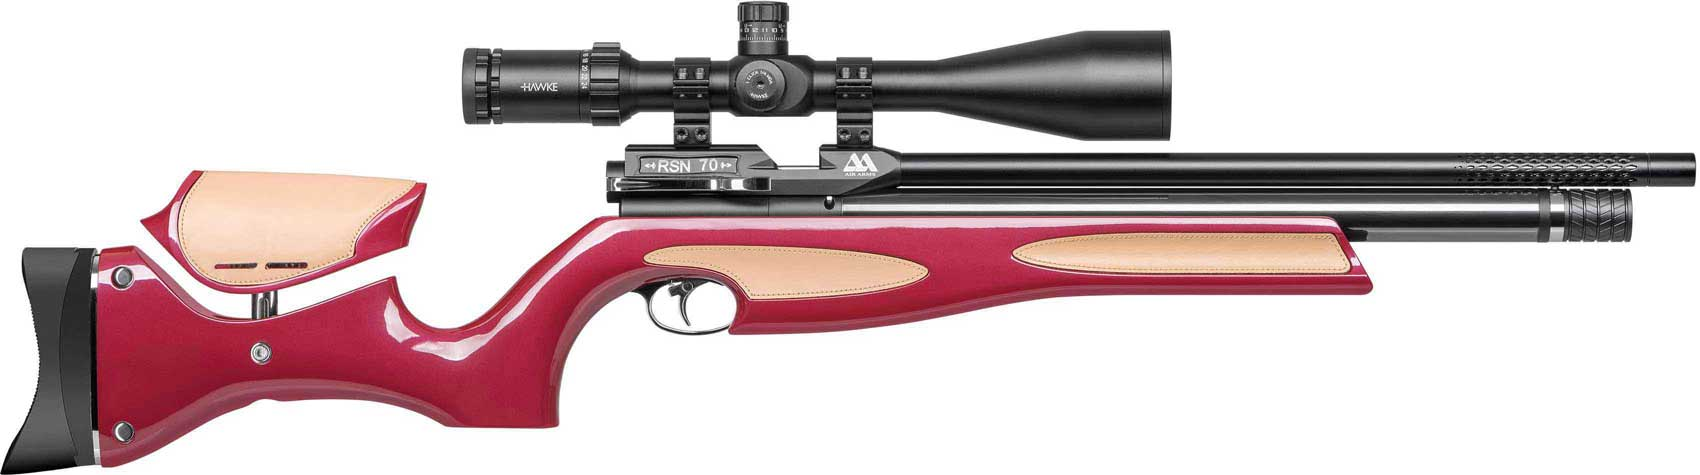 RSN 70 Limited Edition Air Rifle